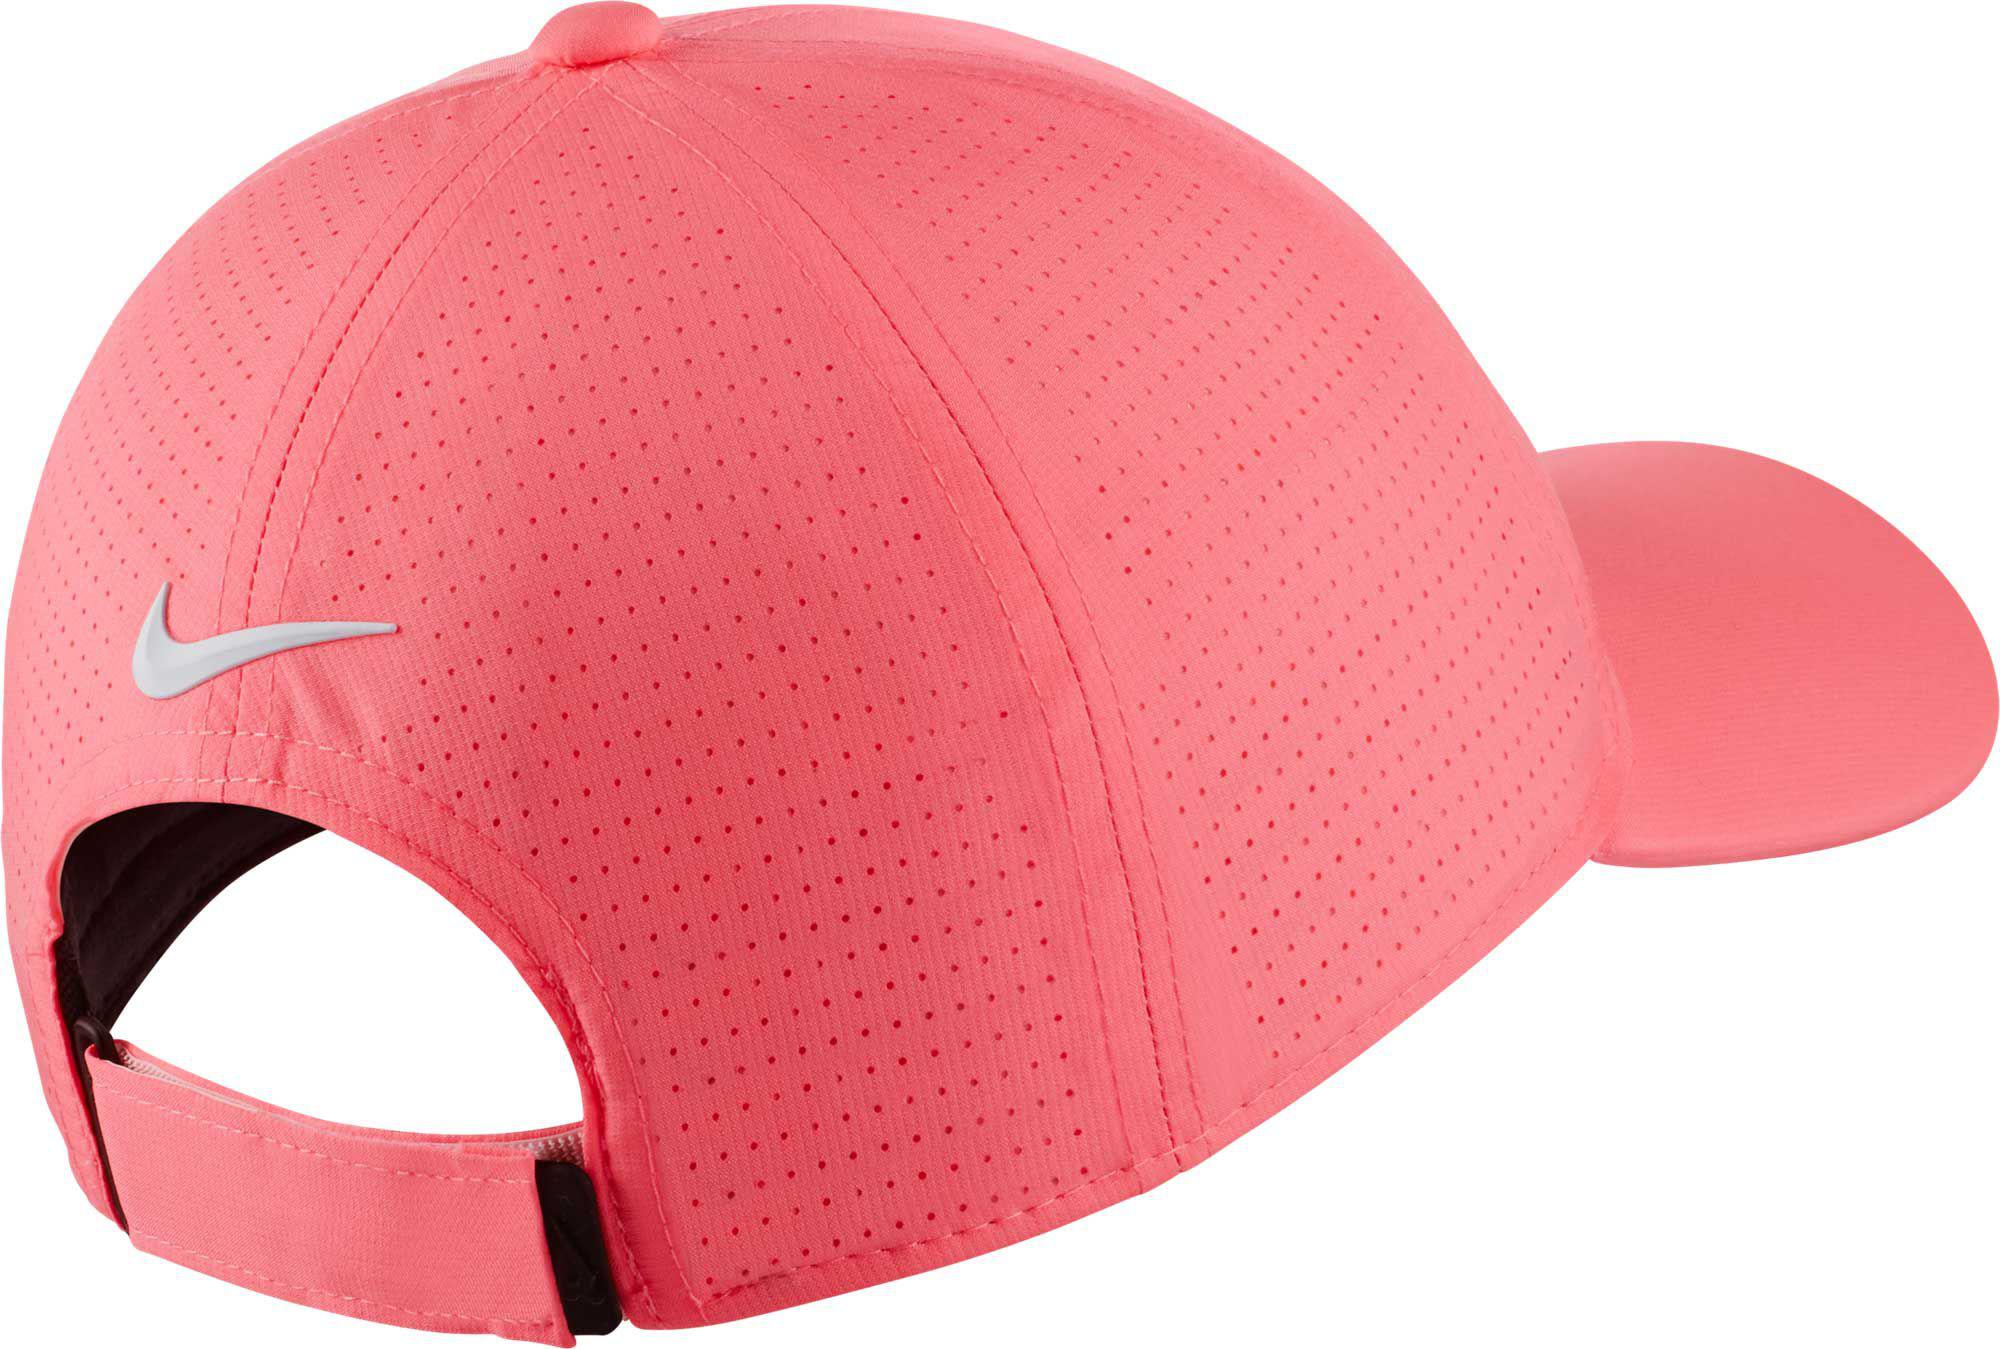 Lyst - Nike 2018 Aerobill Legacy91 Perforated Golf Hat in Pink 2547a98b7a0